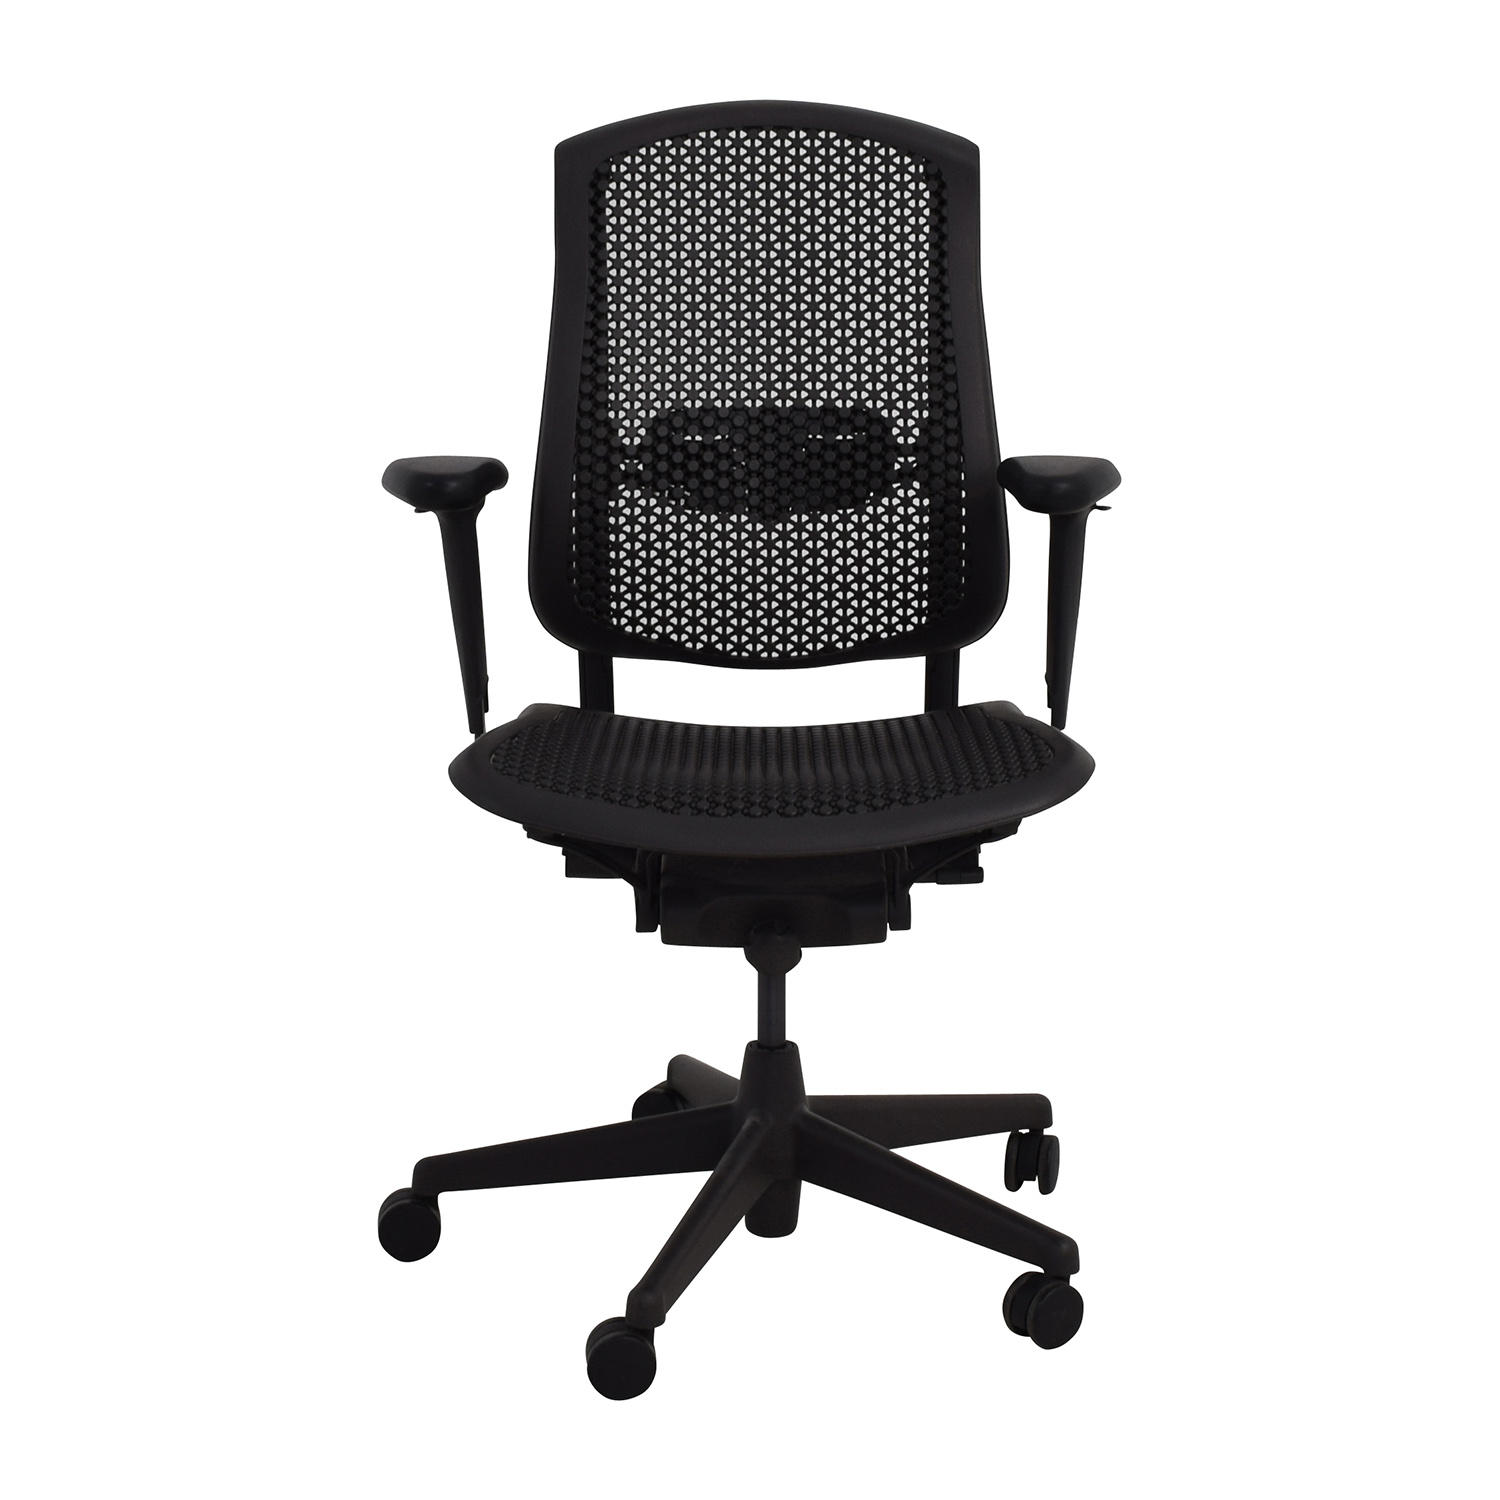 desk chair herman miller wheel replacement 52 off biomorph ergonomic black nj